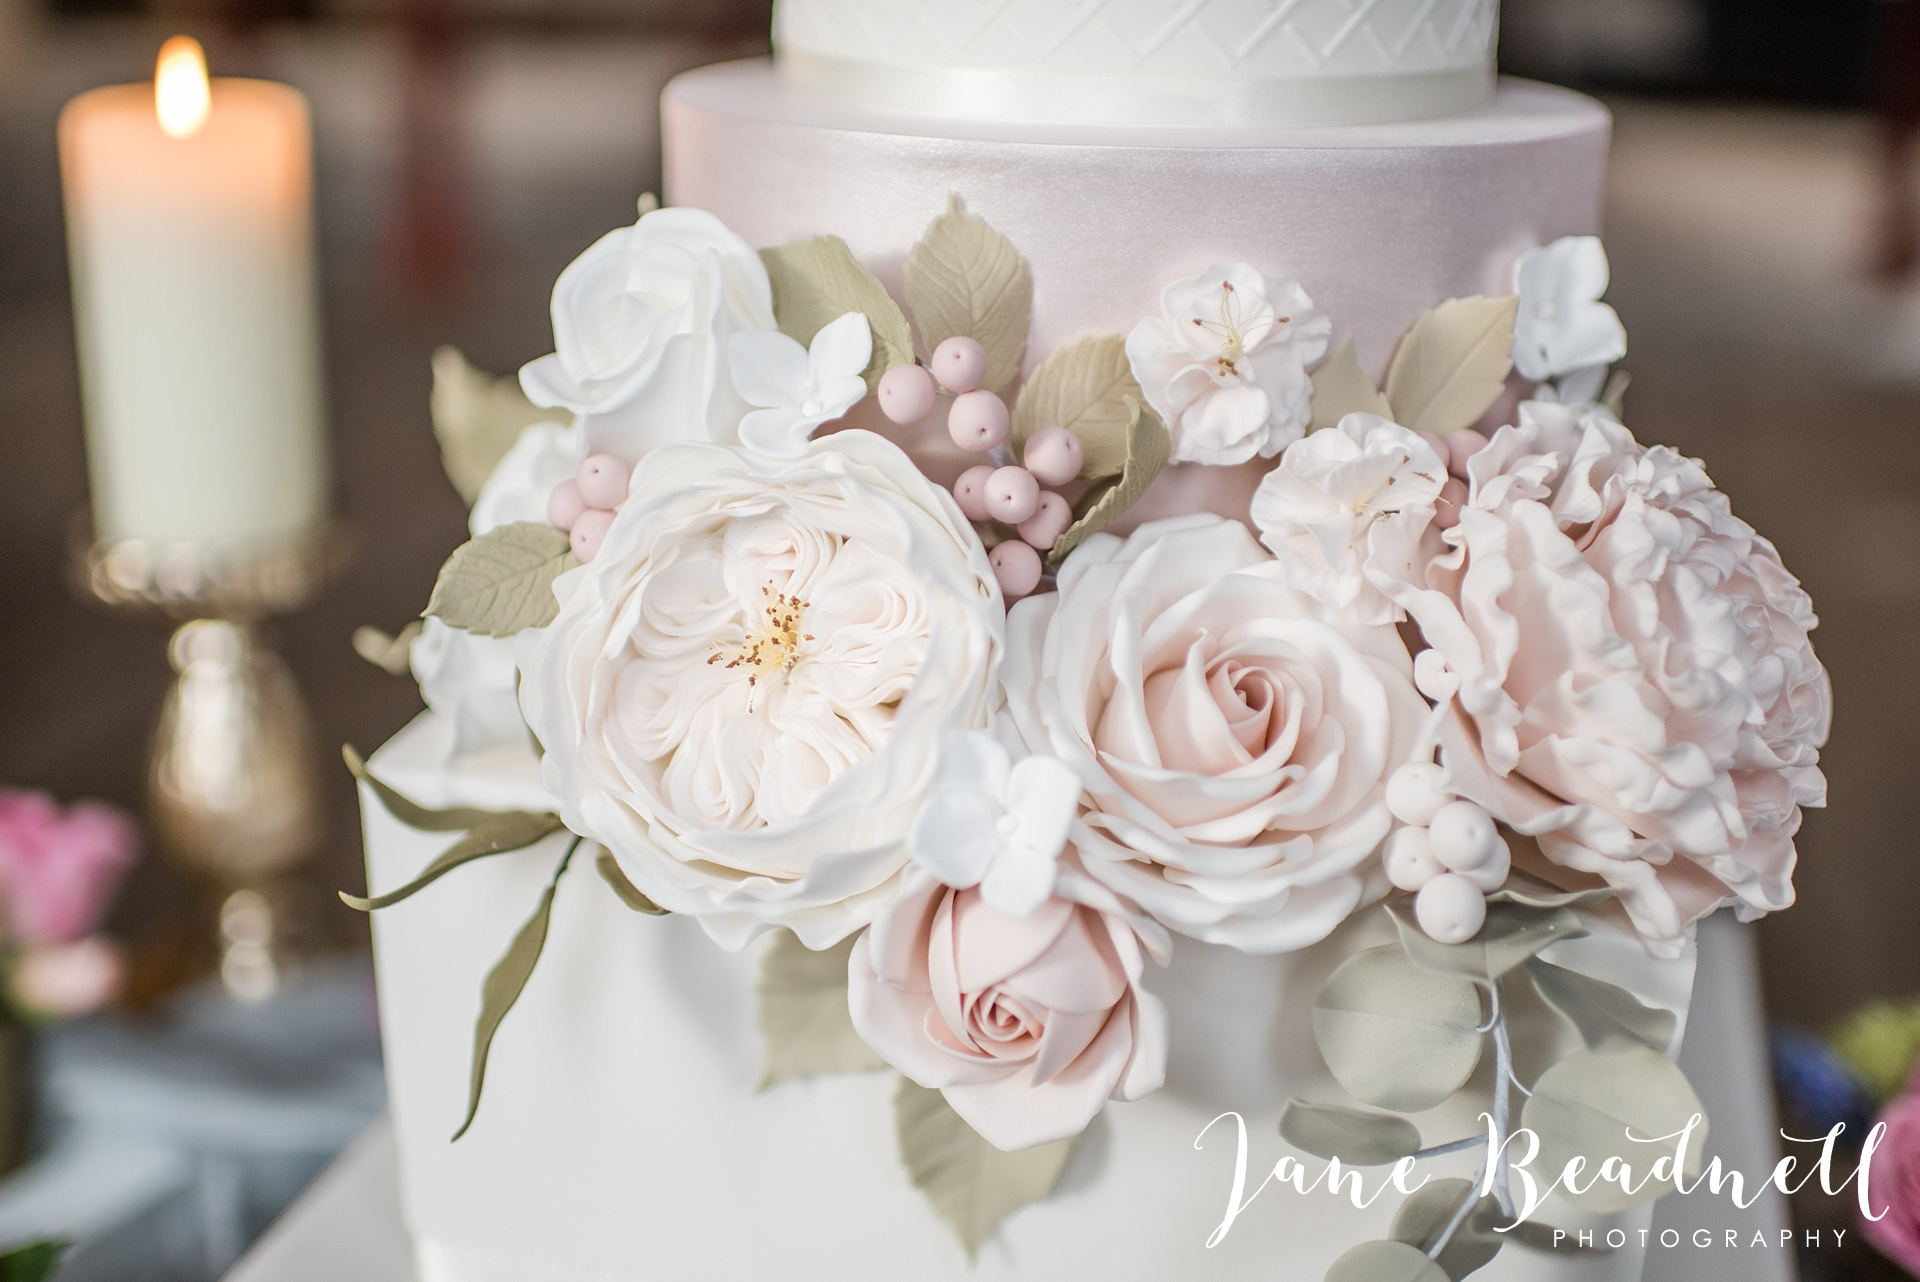 Ballet themed styled wedding shoot at Dalton Mills by Jane Beadnell Photography-0_0033